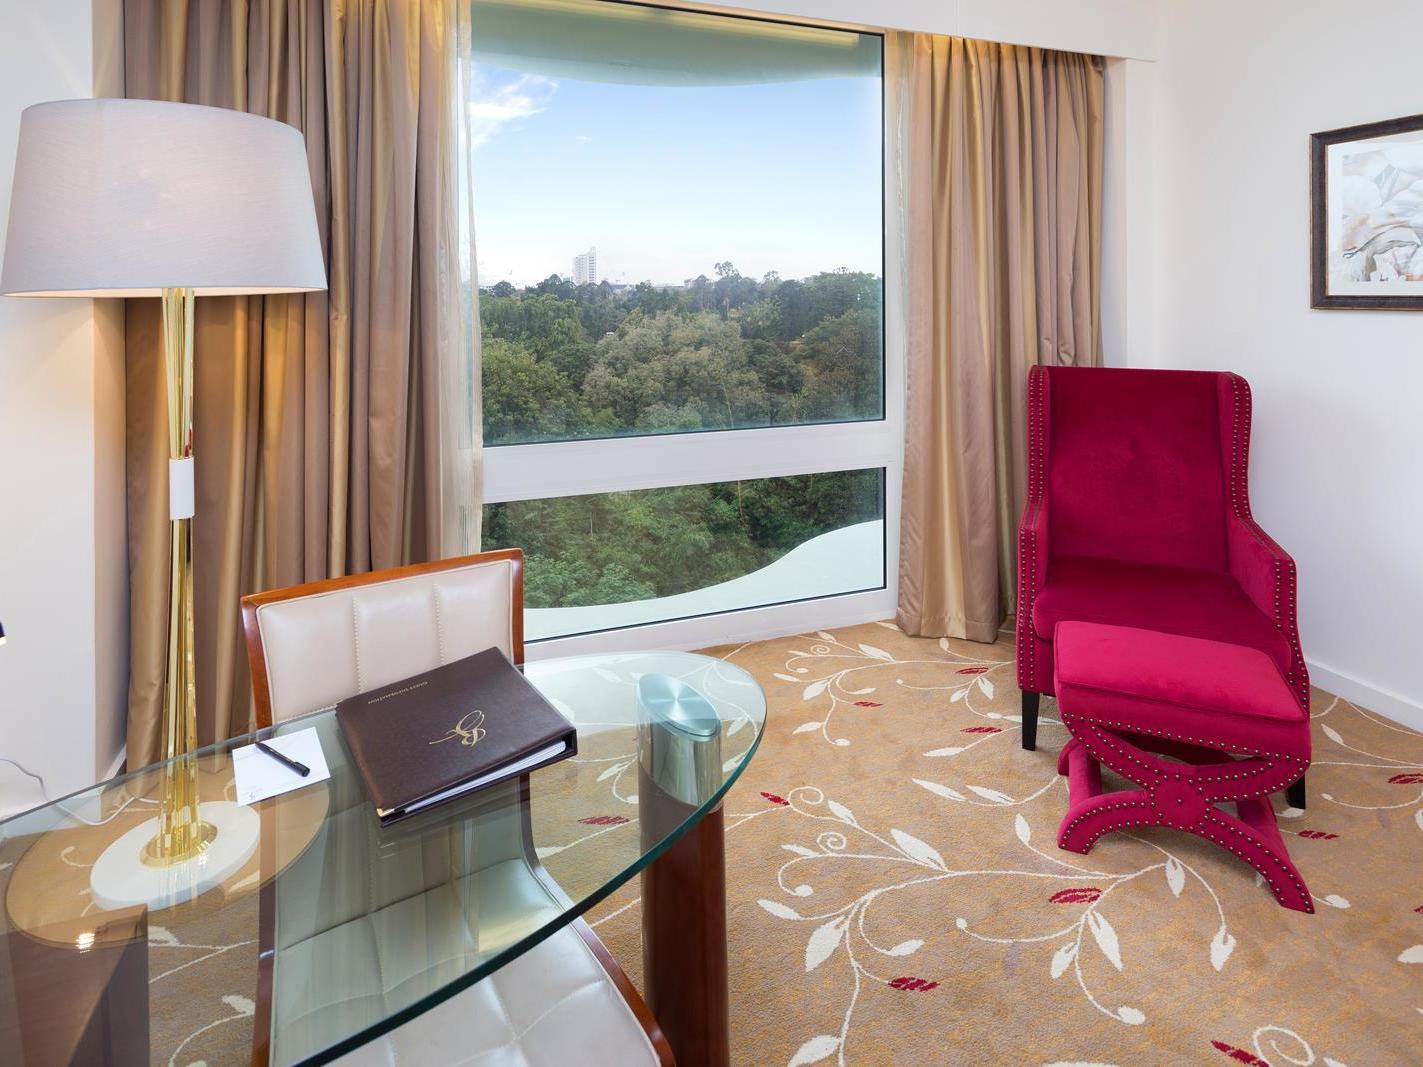 Premium City View King Room with Red chair and studying table rooms at Royal on the Park hotel